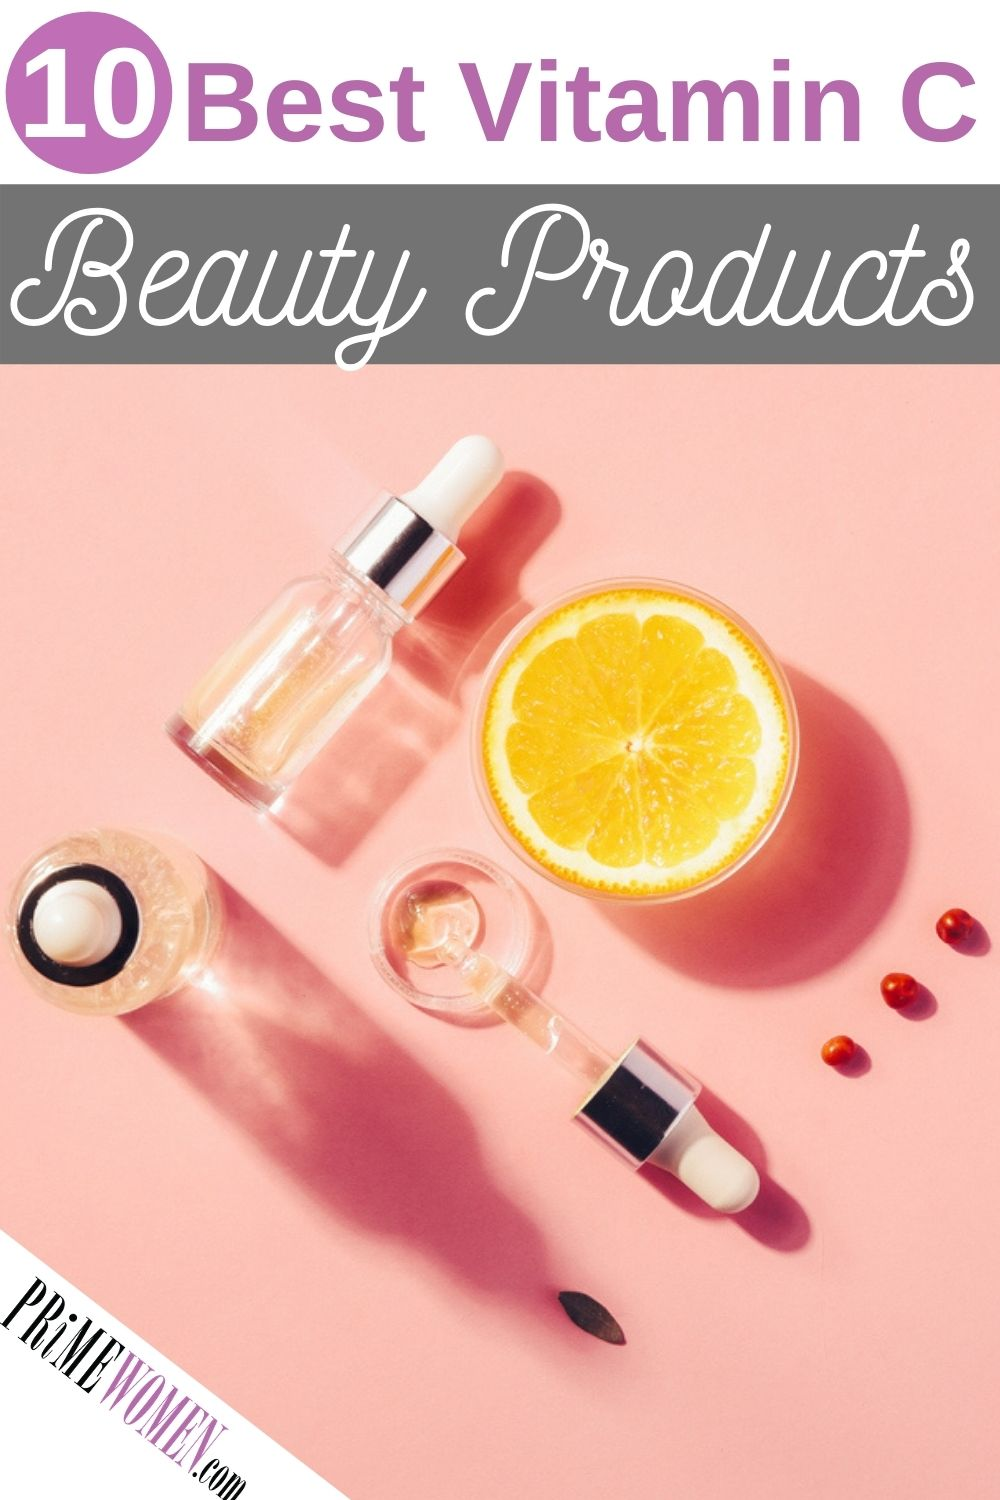 10 Best Vitamin C Beauty Products